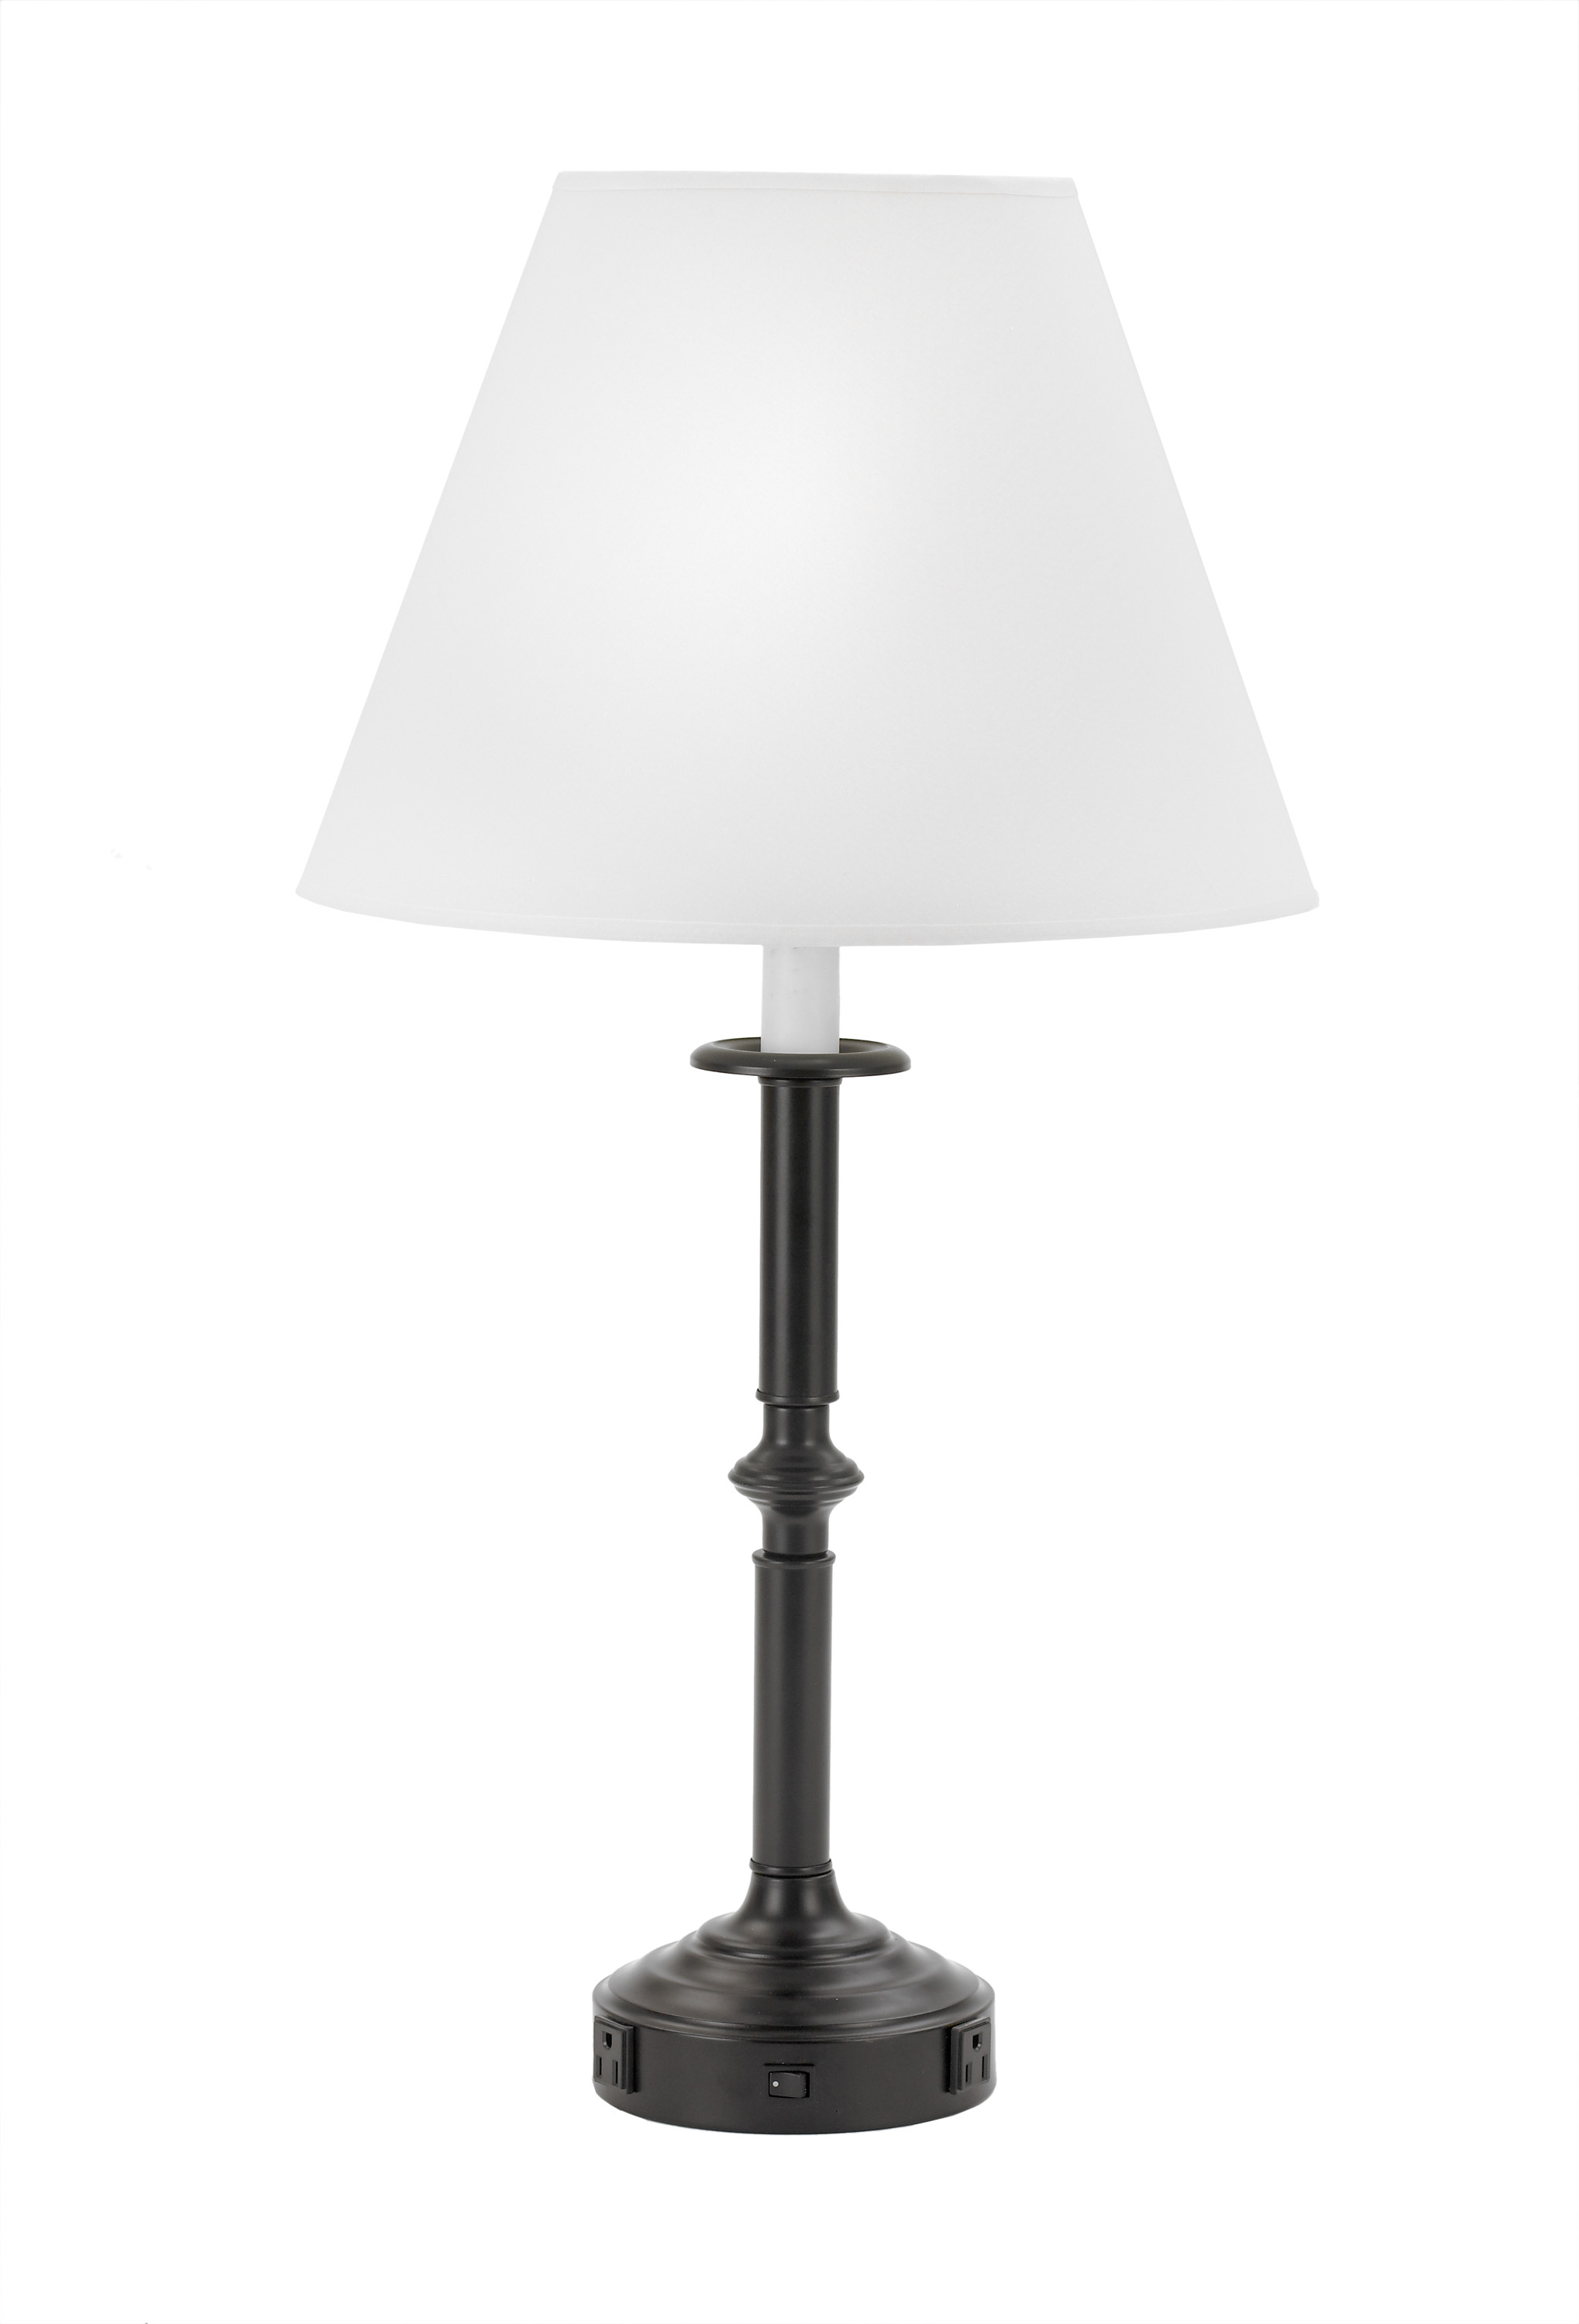 (1004XX) Black Iron Table Lamp